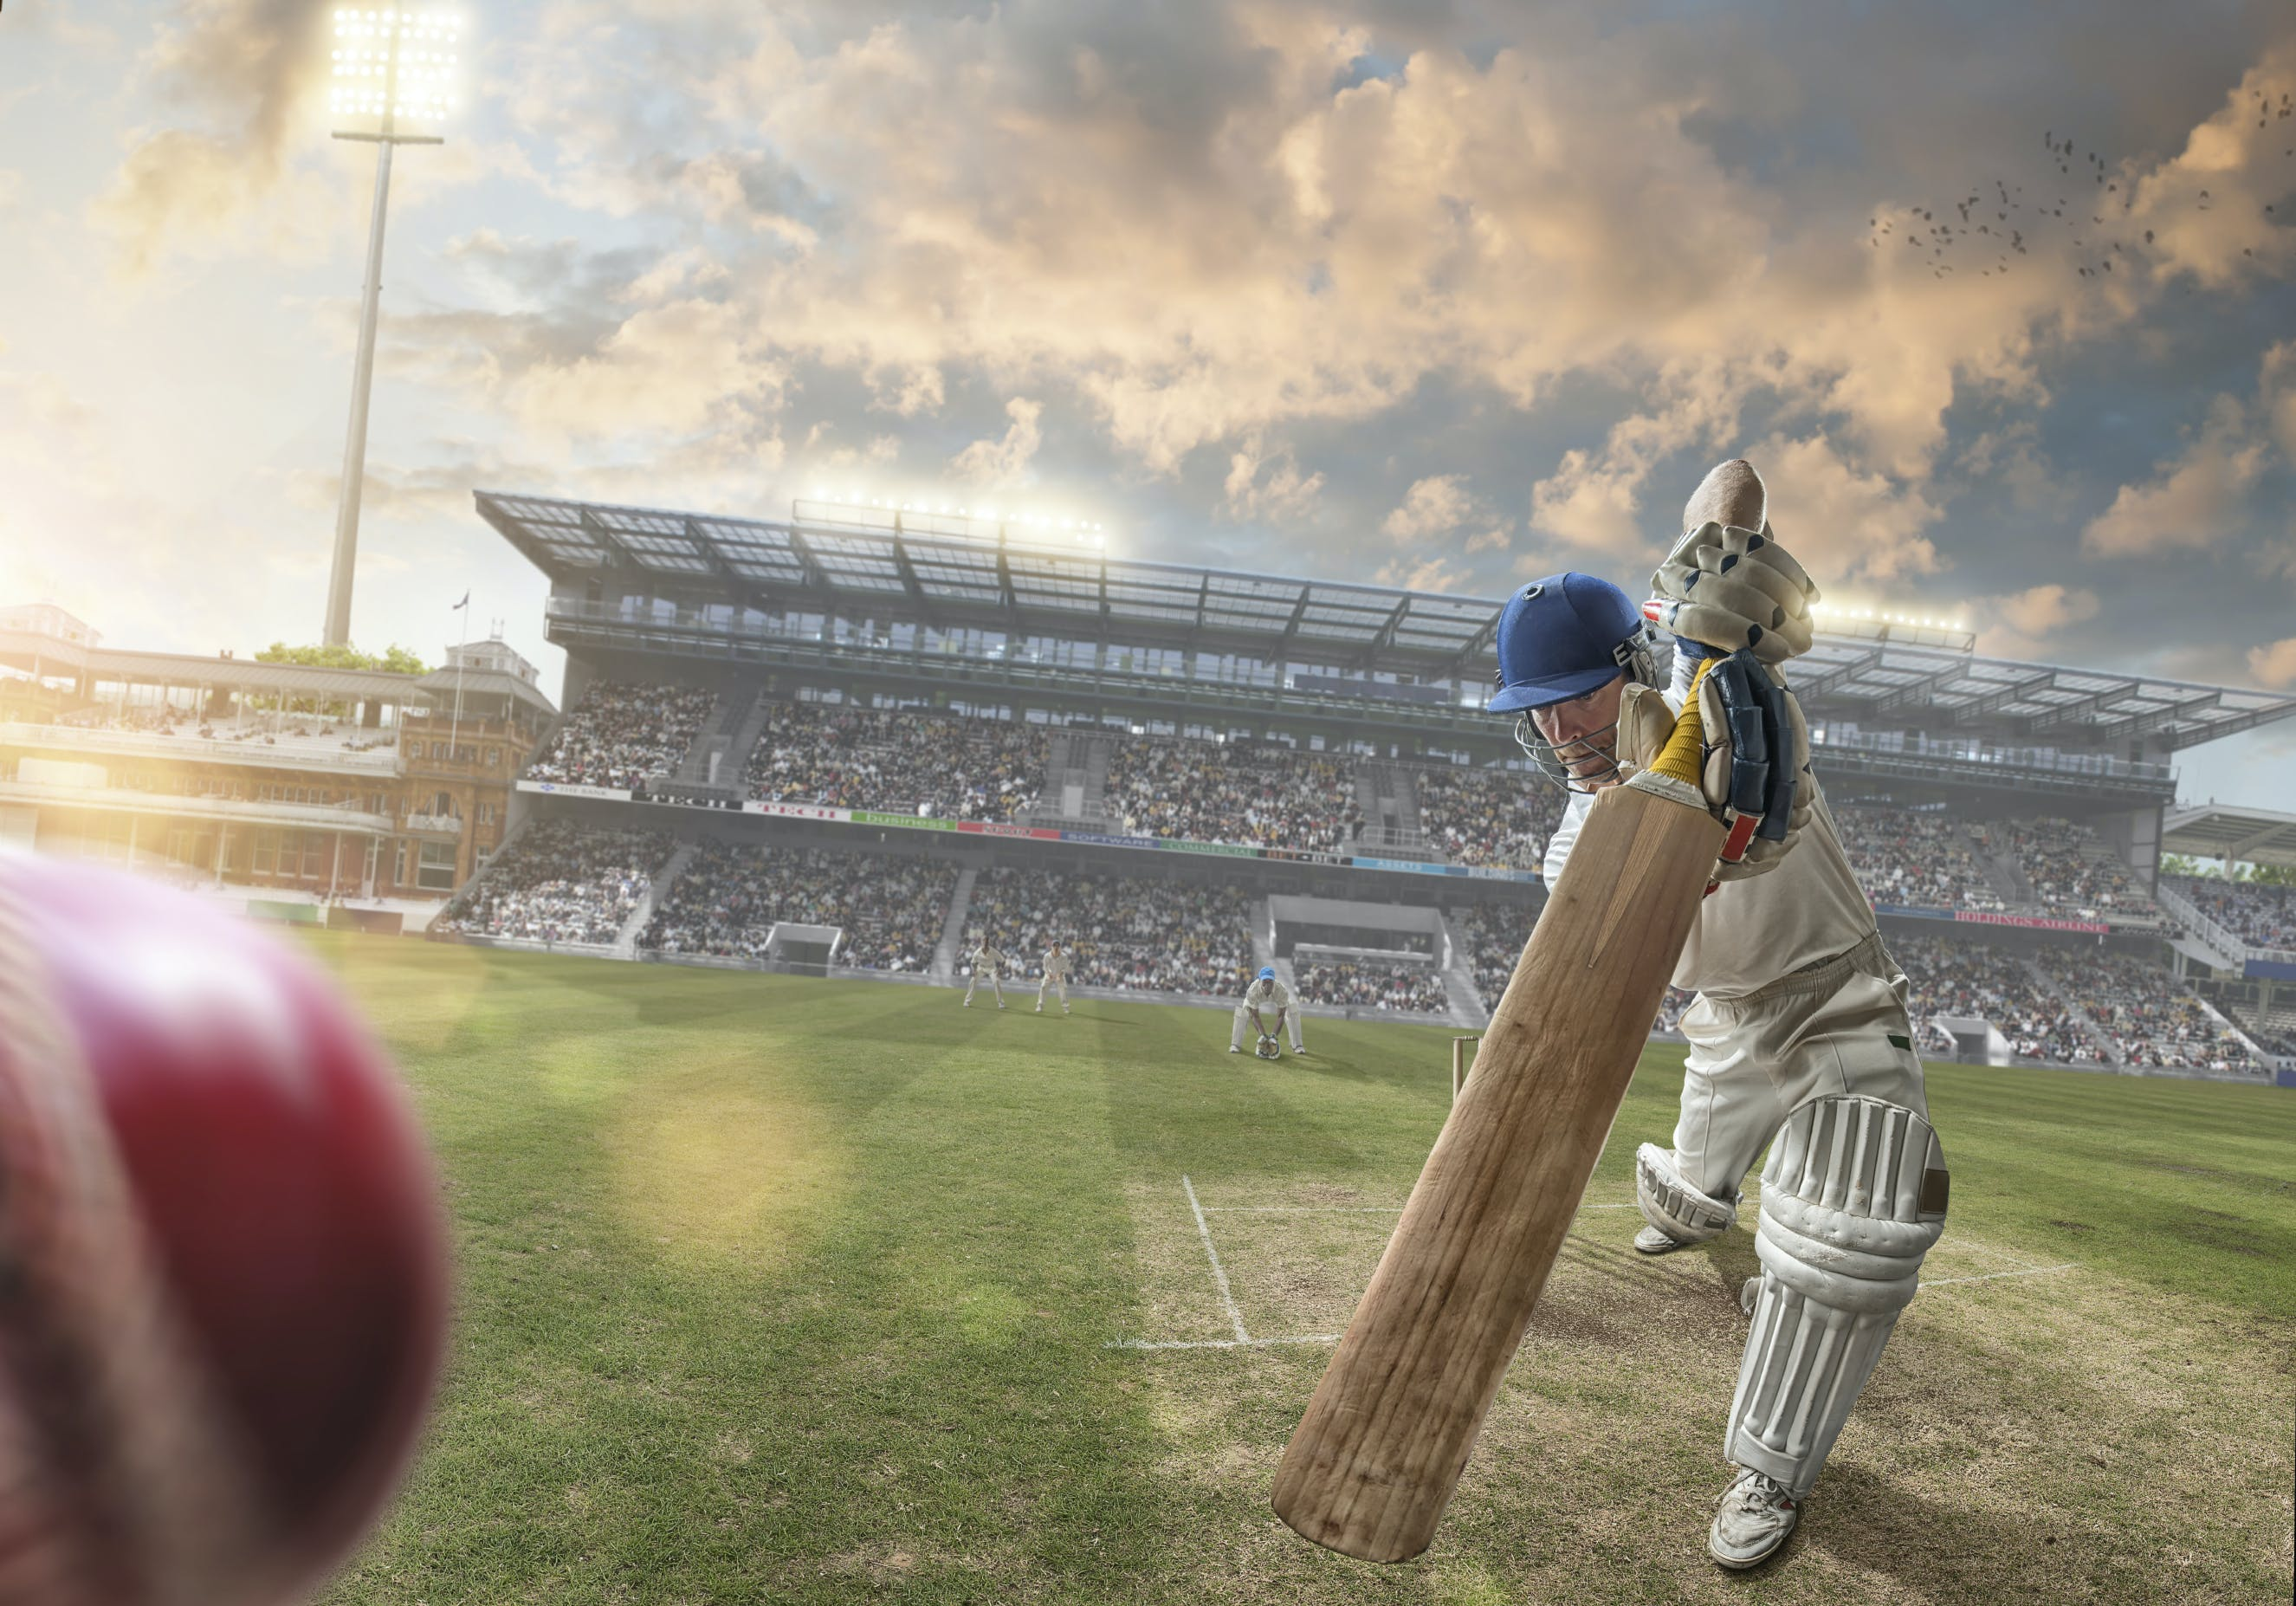 'Cricket Is One Of The Most Diverse Sports Going' Claims